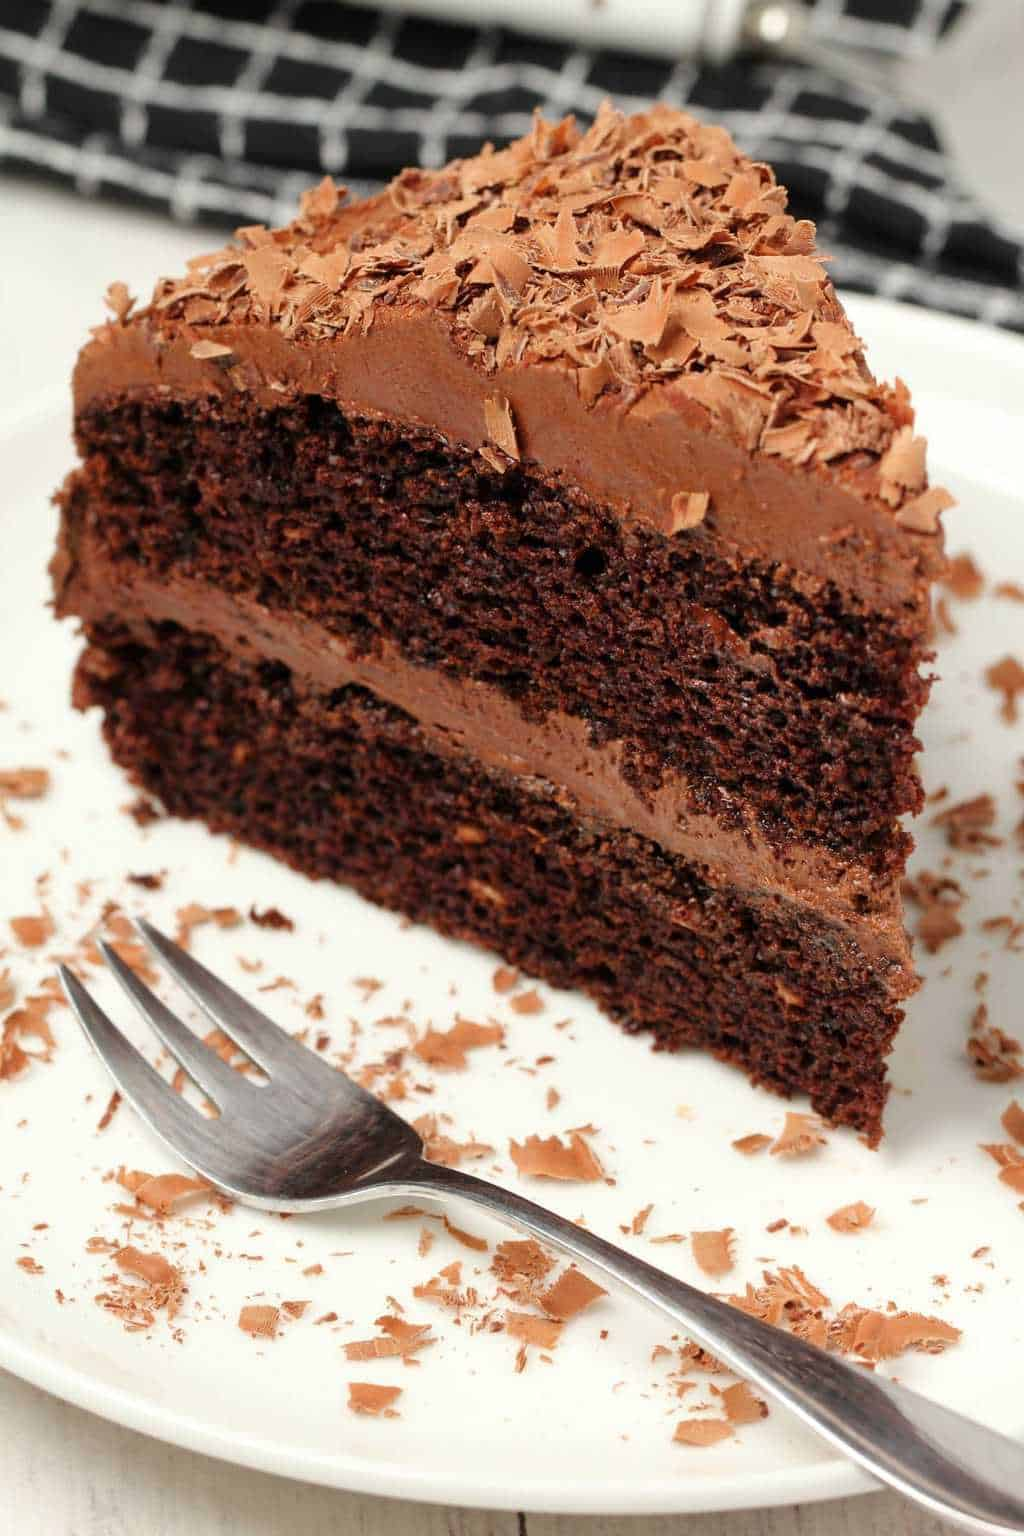 A slice of the chocolate cake on a white plate with a cake fork.